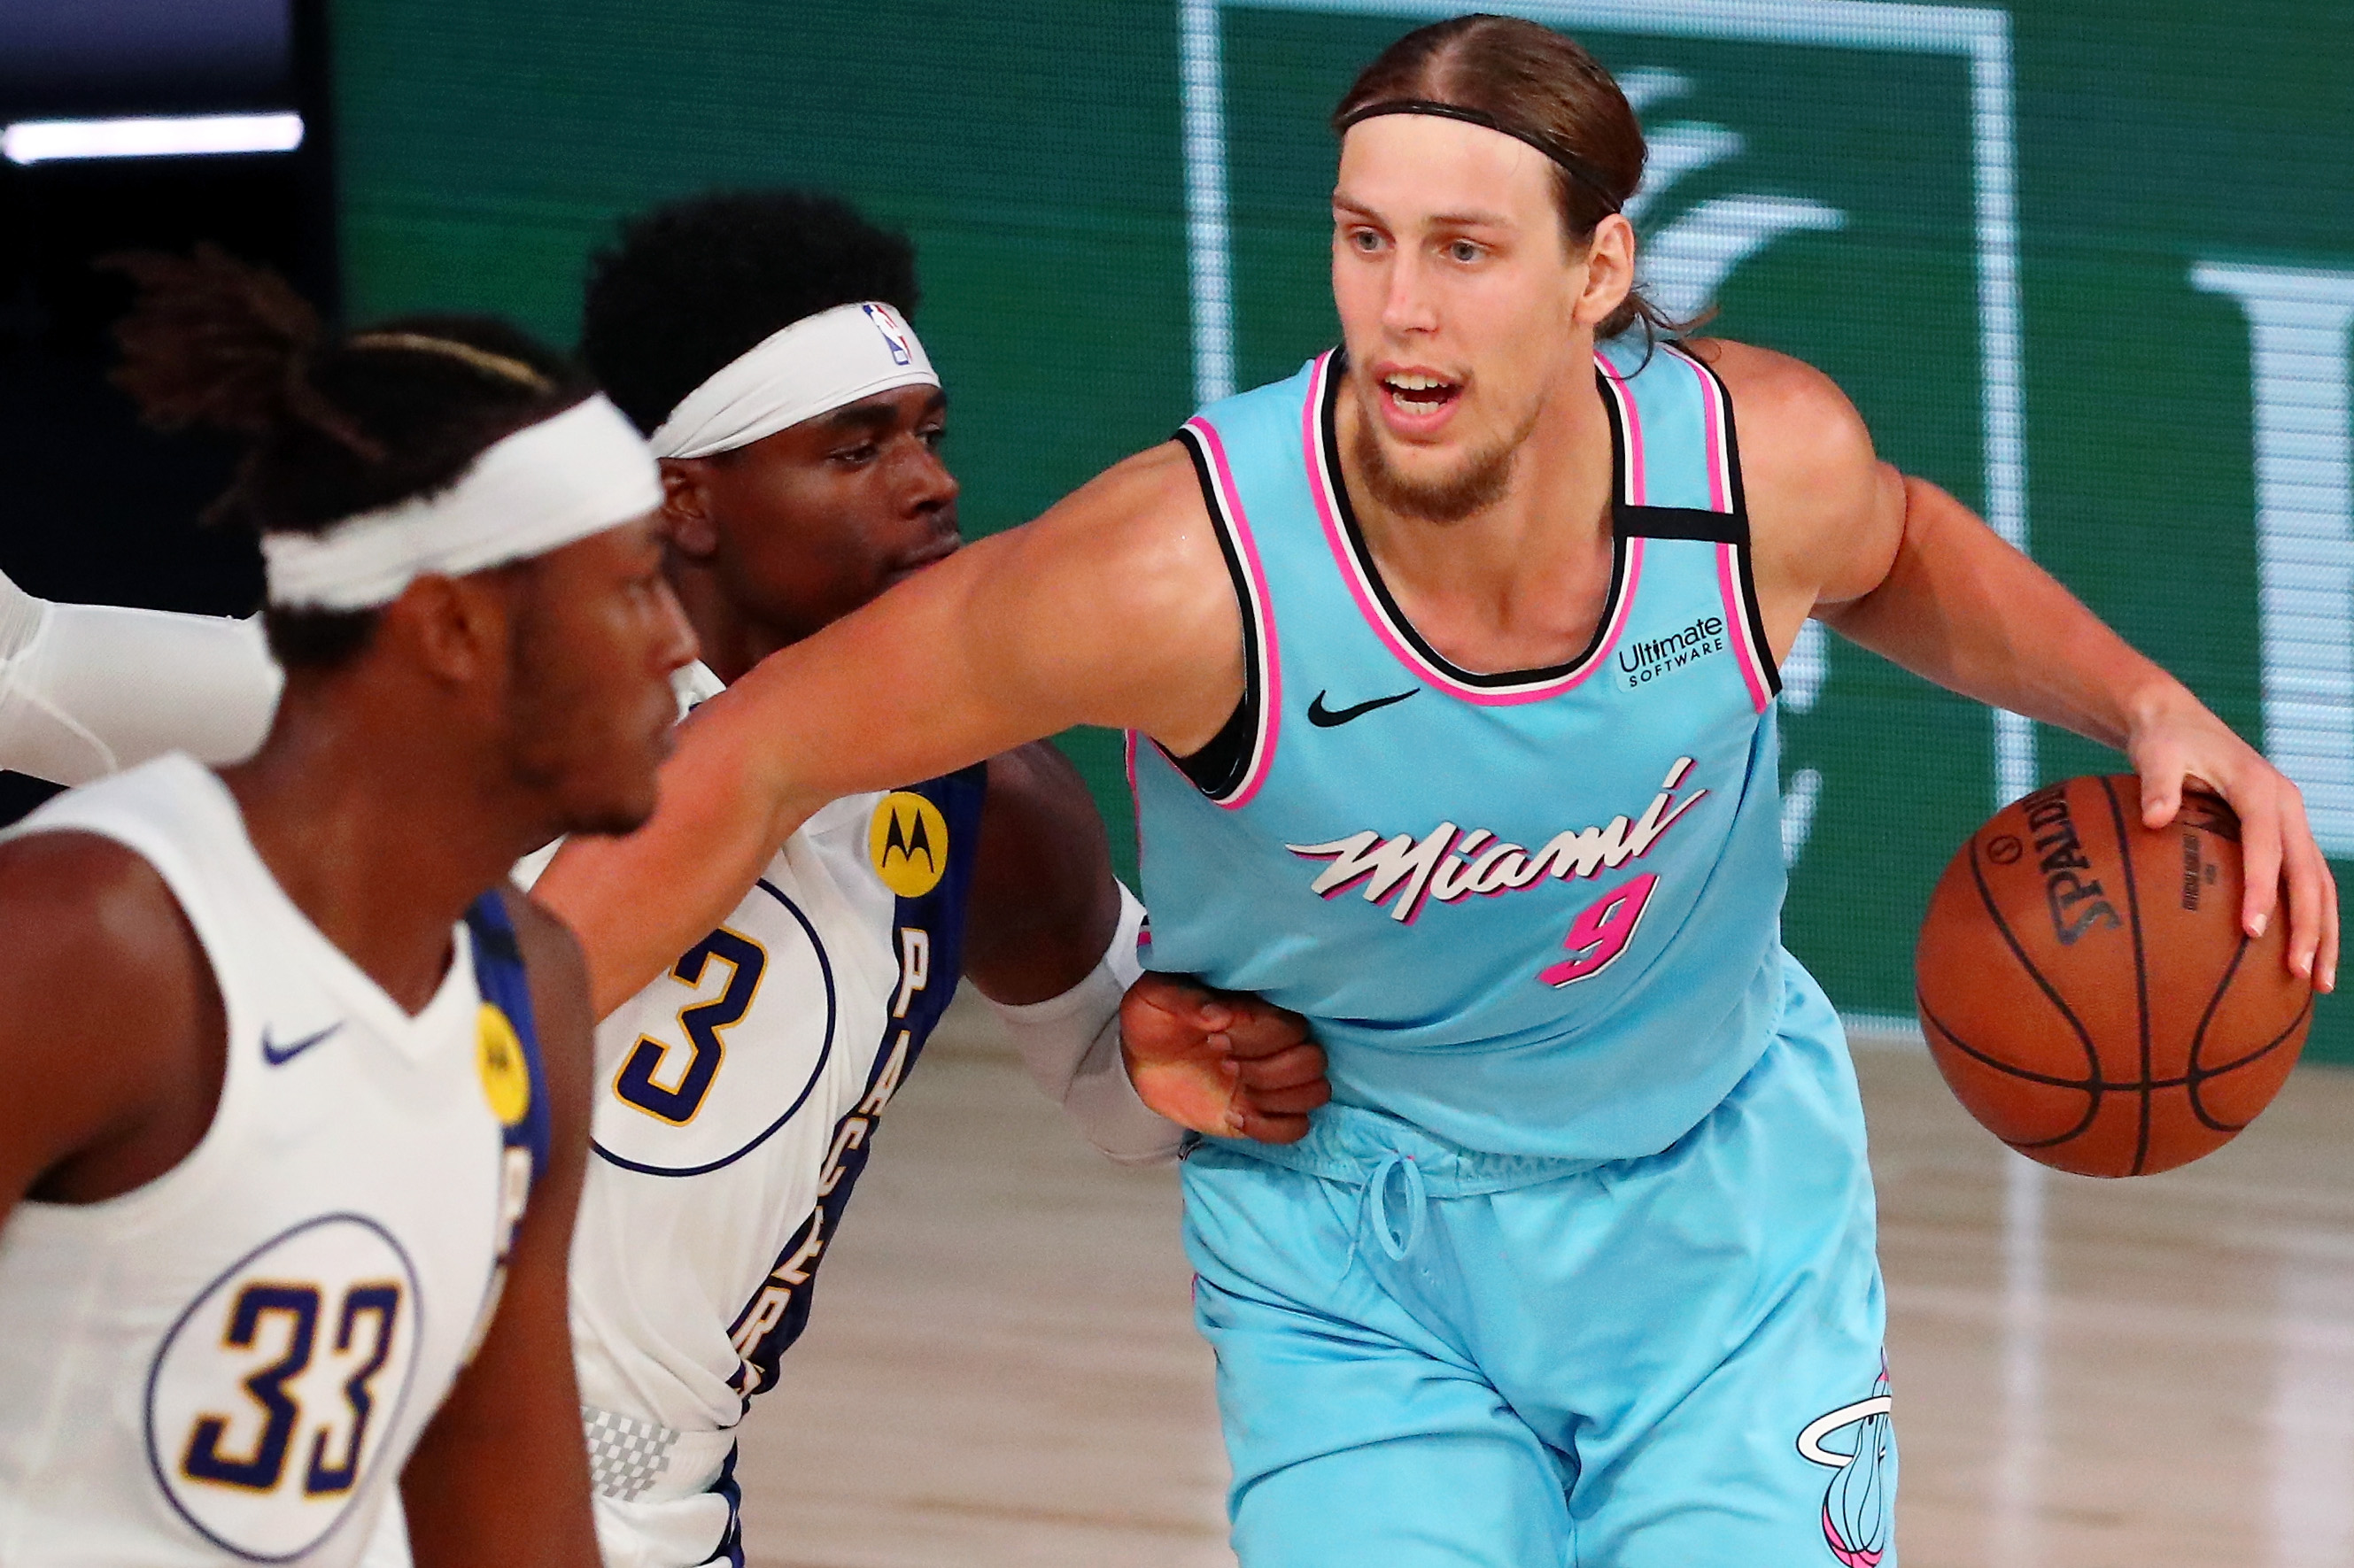 Kelly Olynyk dribbling the ball during a Heat game